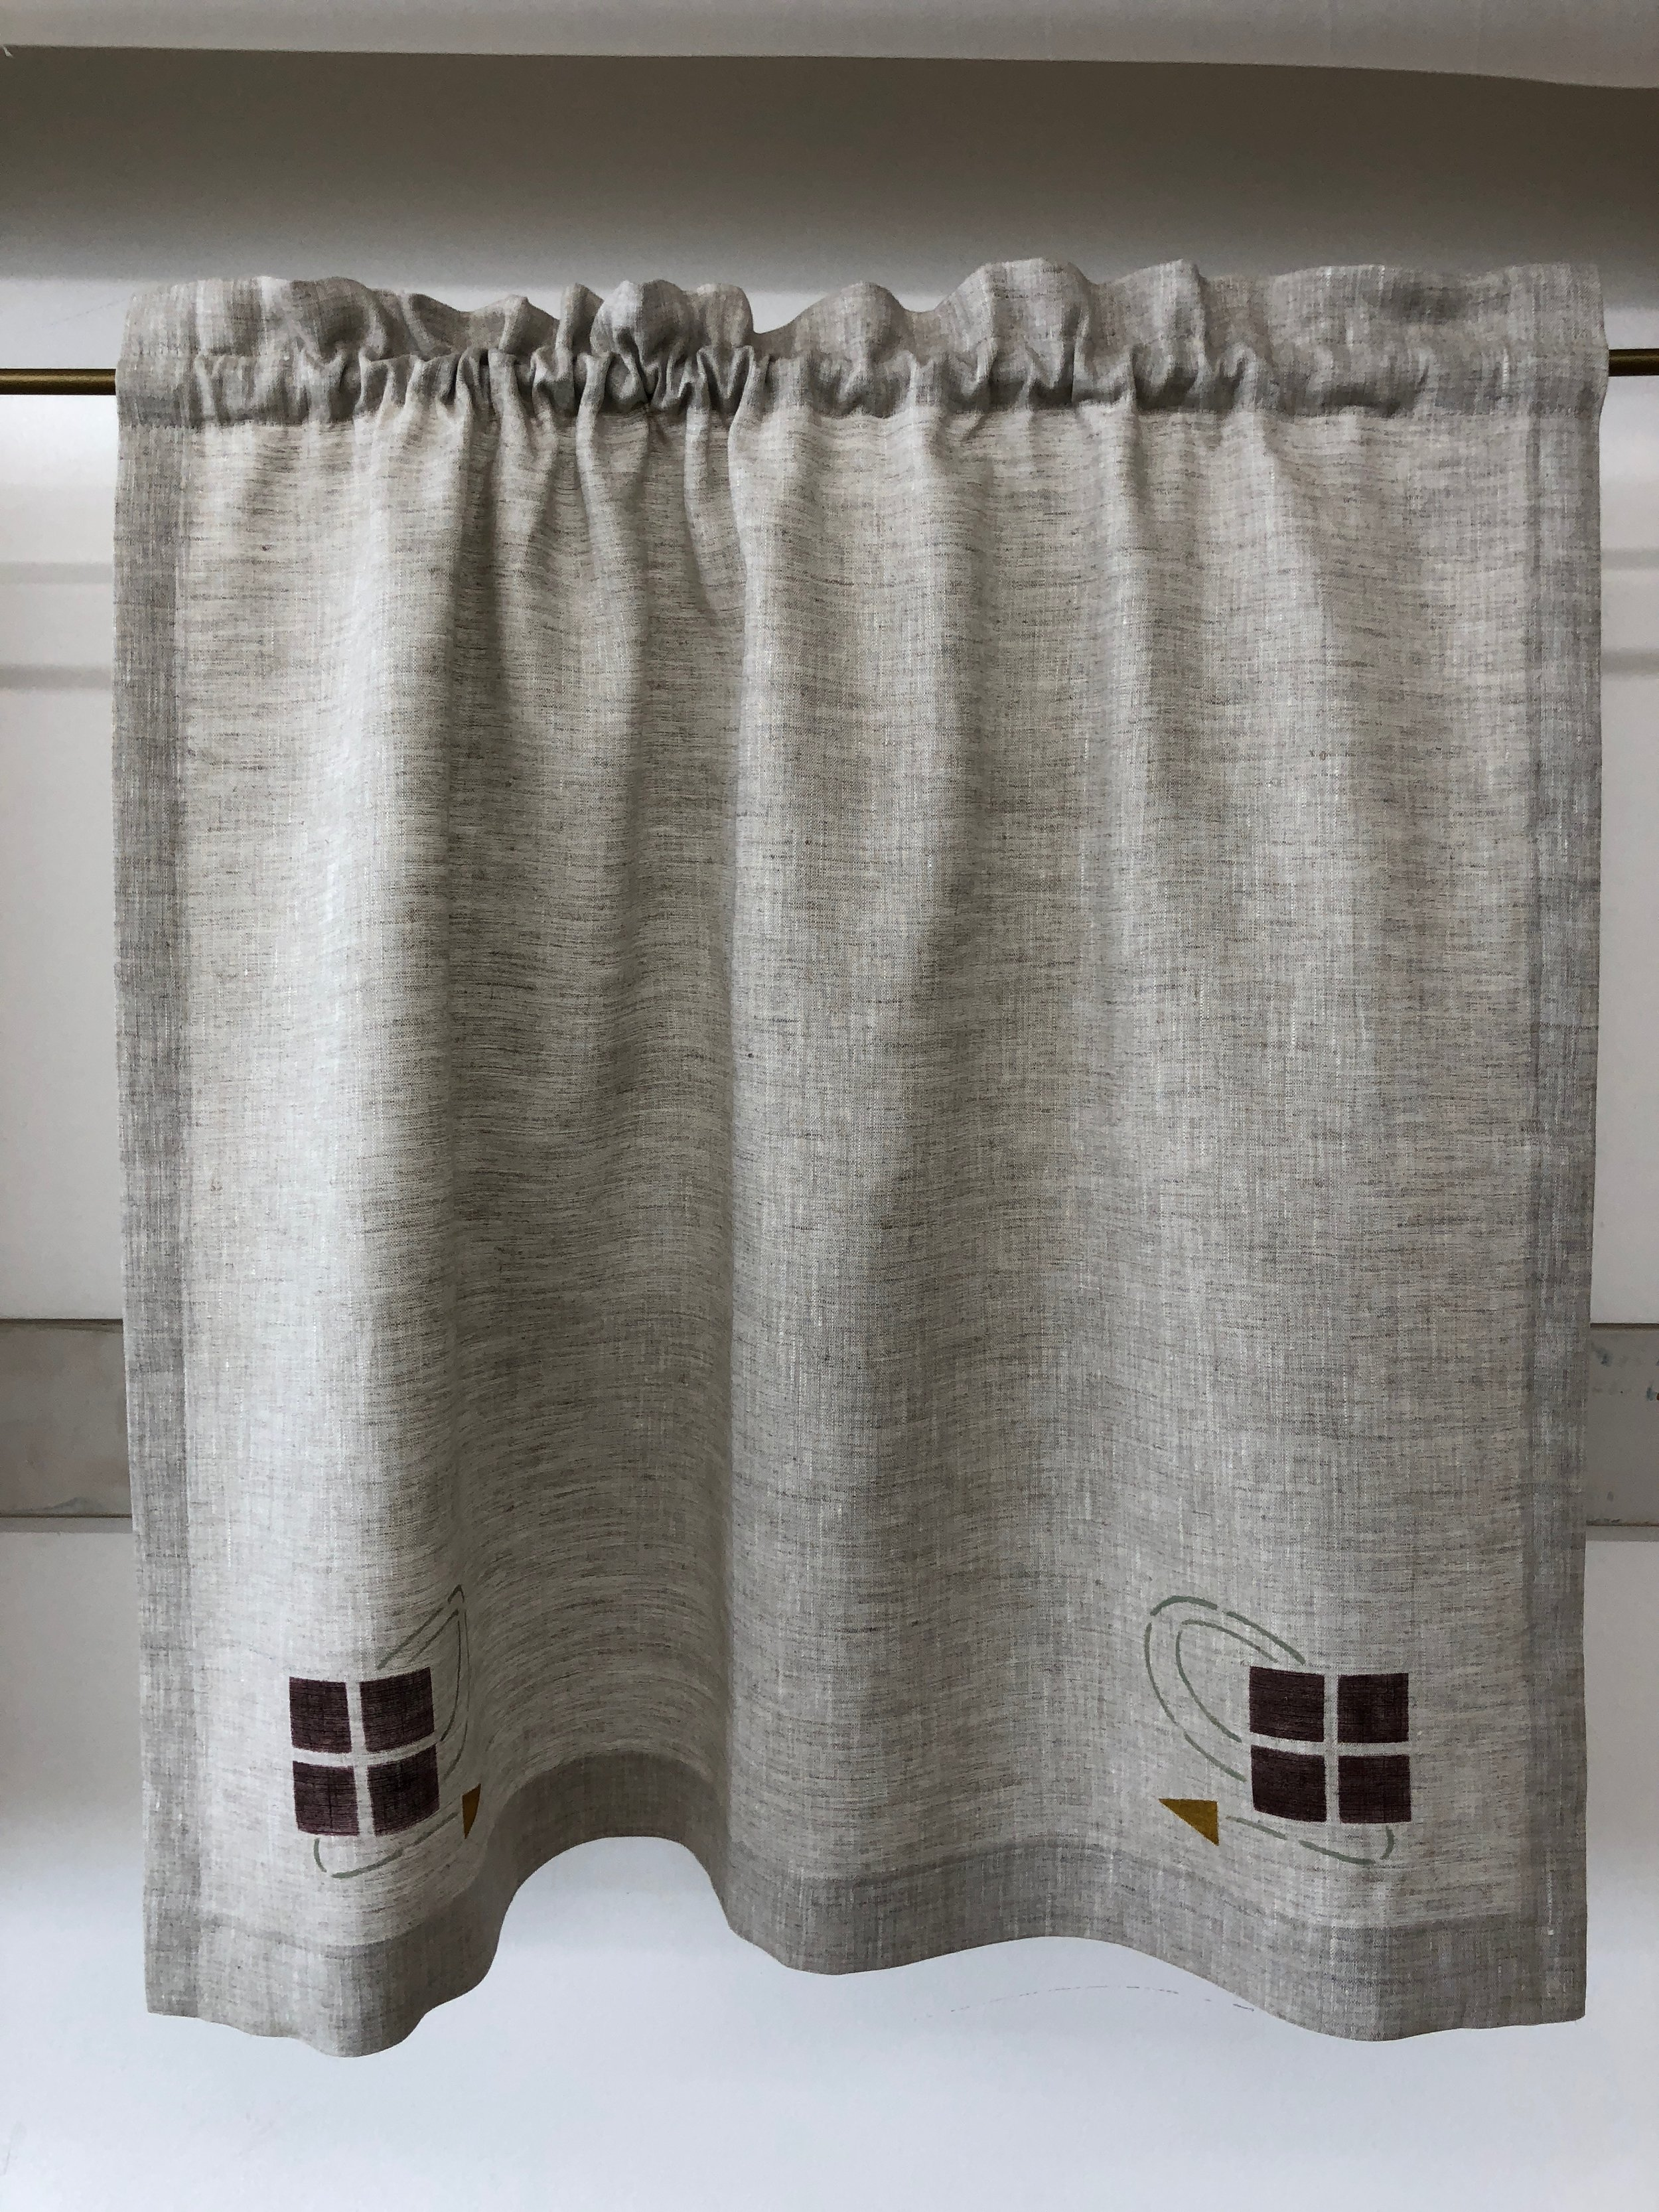 Shown here is a curtain with top rod pocket and Checkerberry stencil in mahogany, forest and antique gold. Fabric is Handkerchief Linen - Natural.